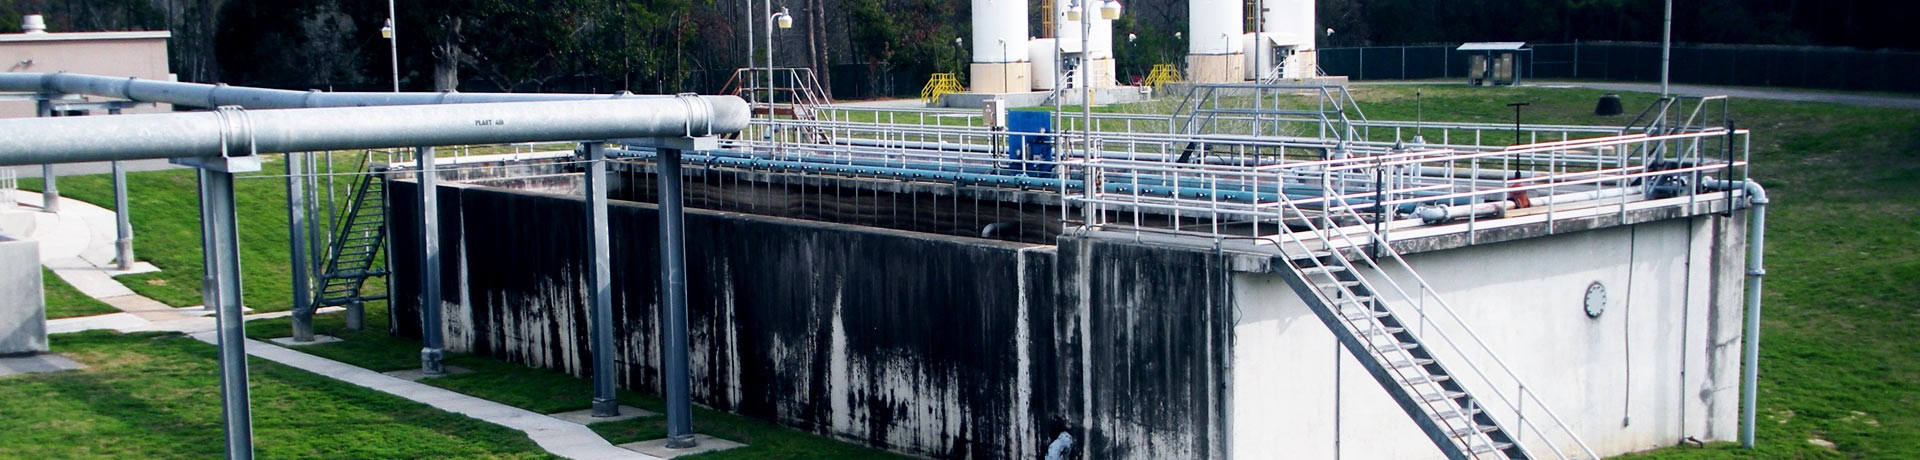 Why Treat Wastewater?